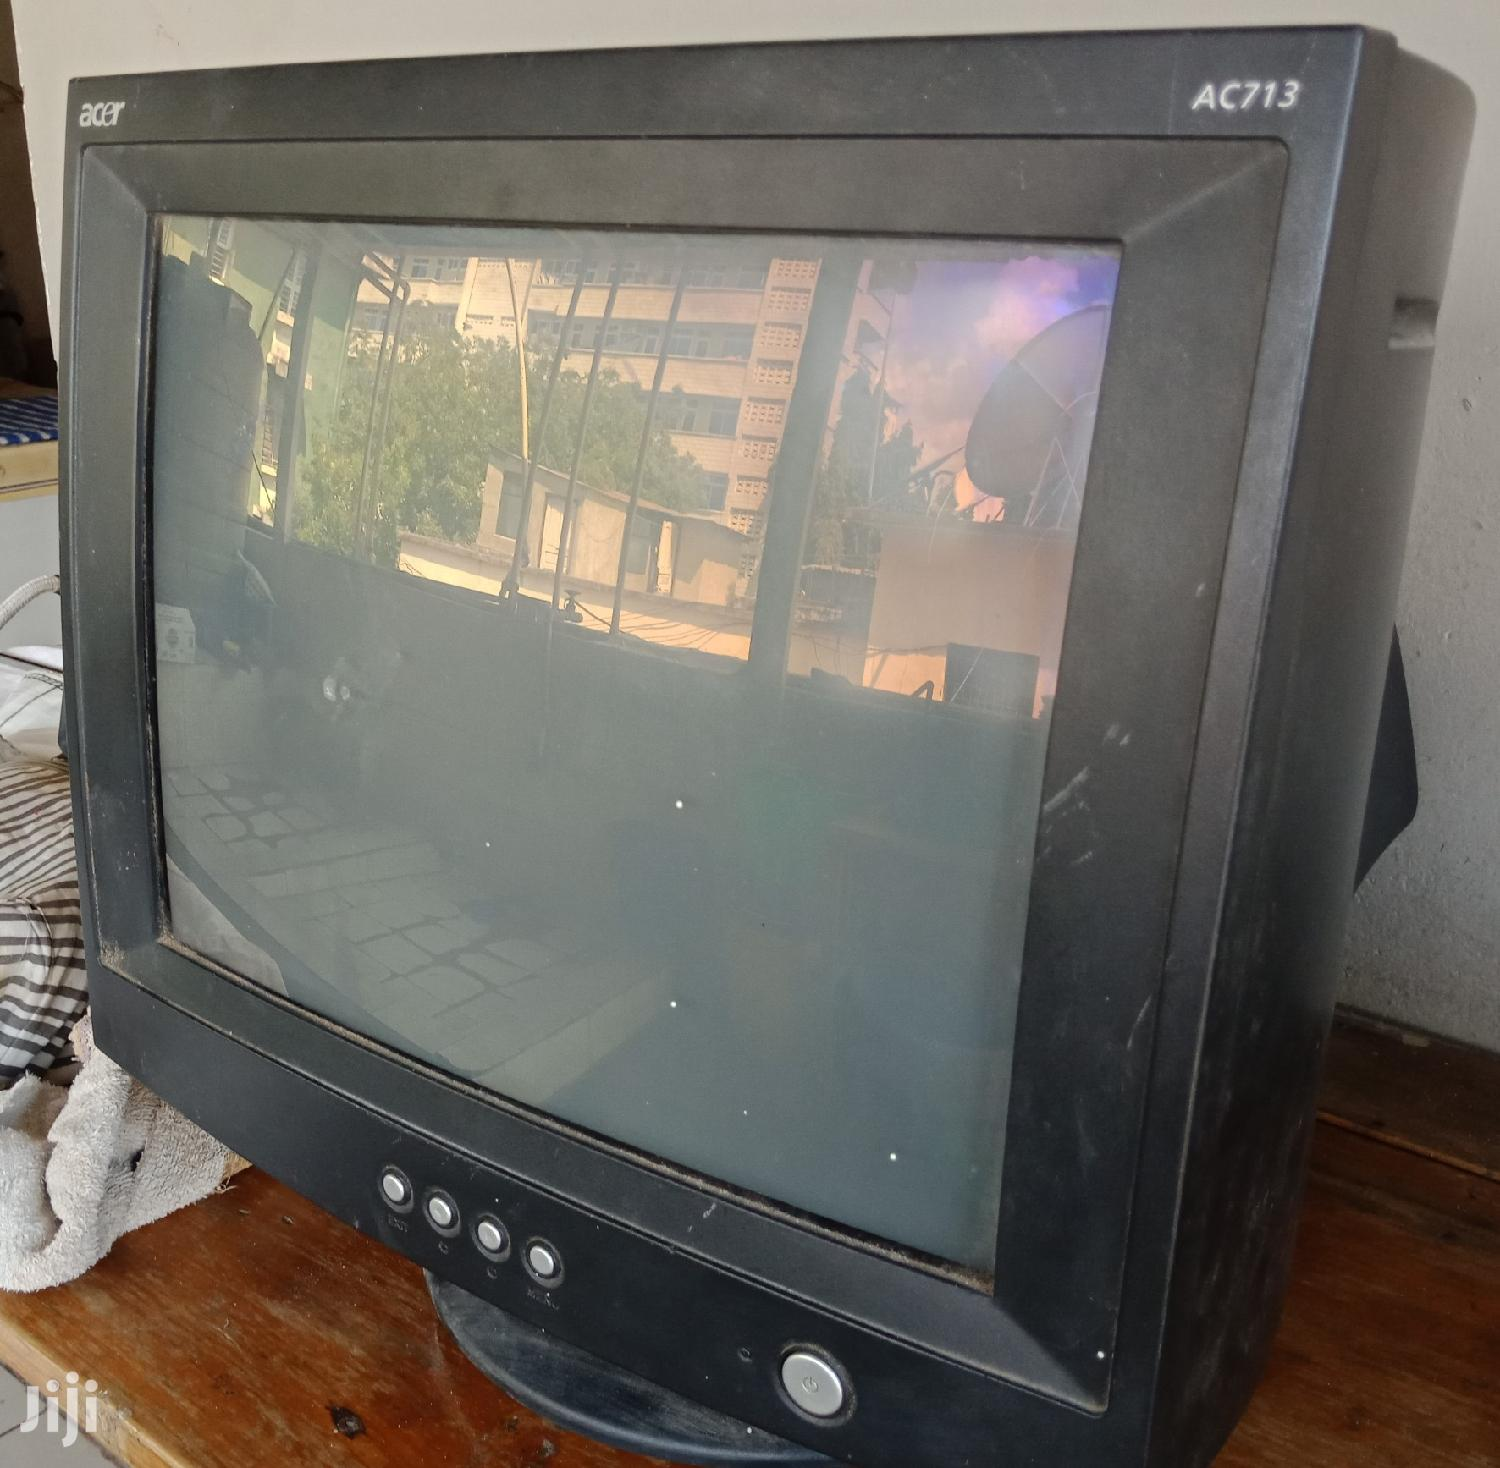 Used Desktop Moniter In Good Working Condition. | Computer Monitors for sale in Ilala, Dar es Salaam, Tanzania